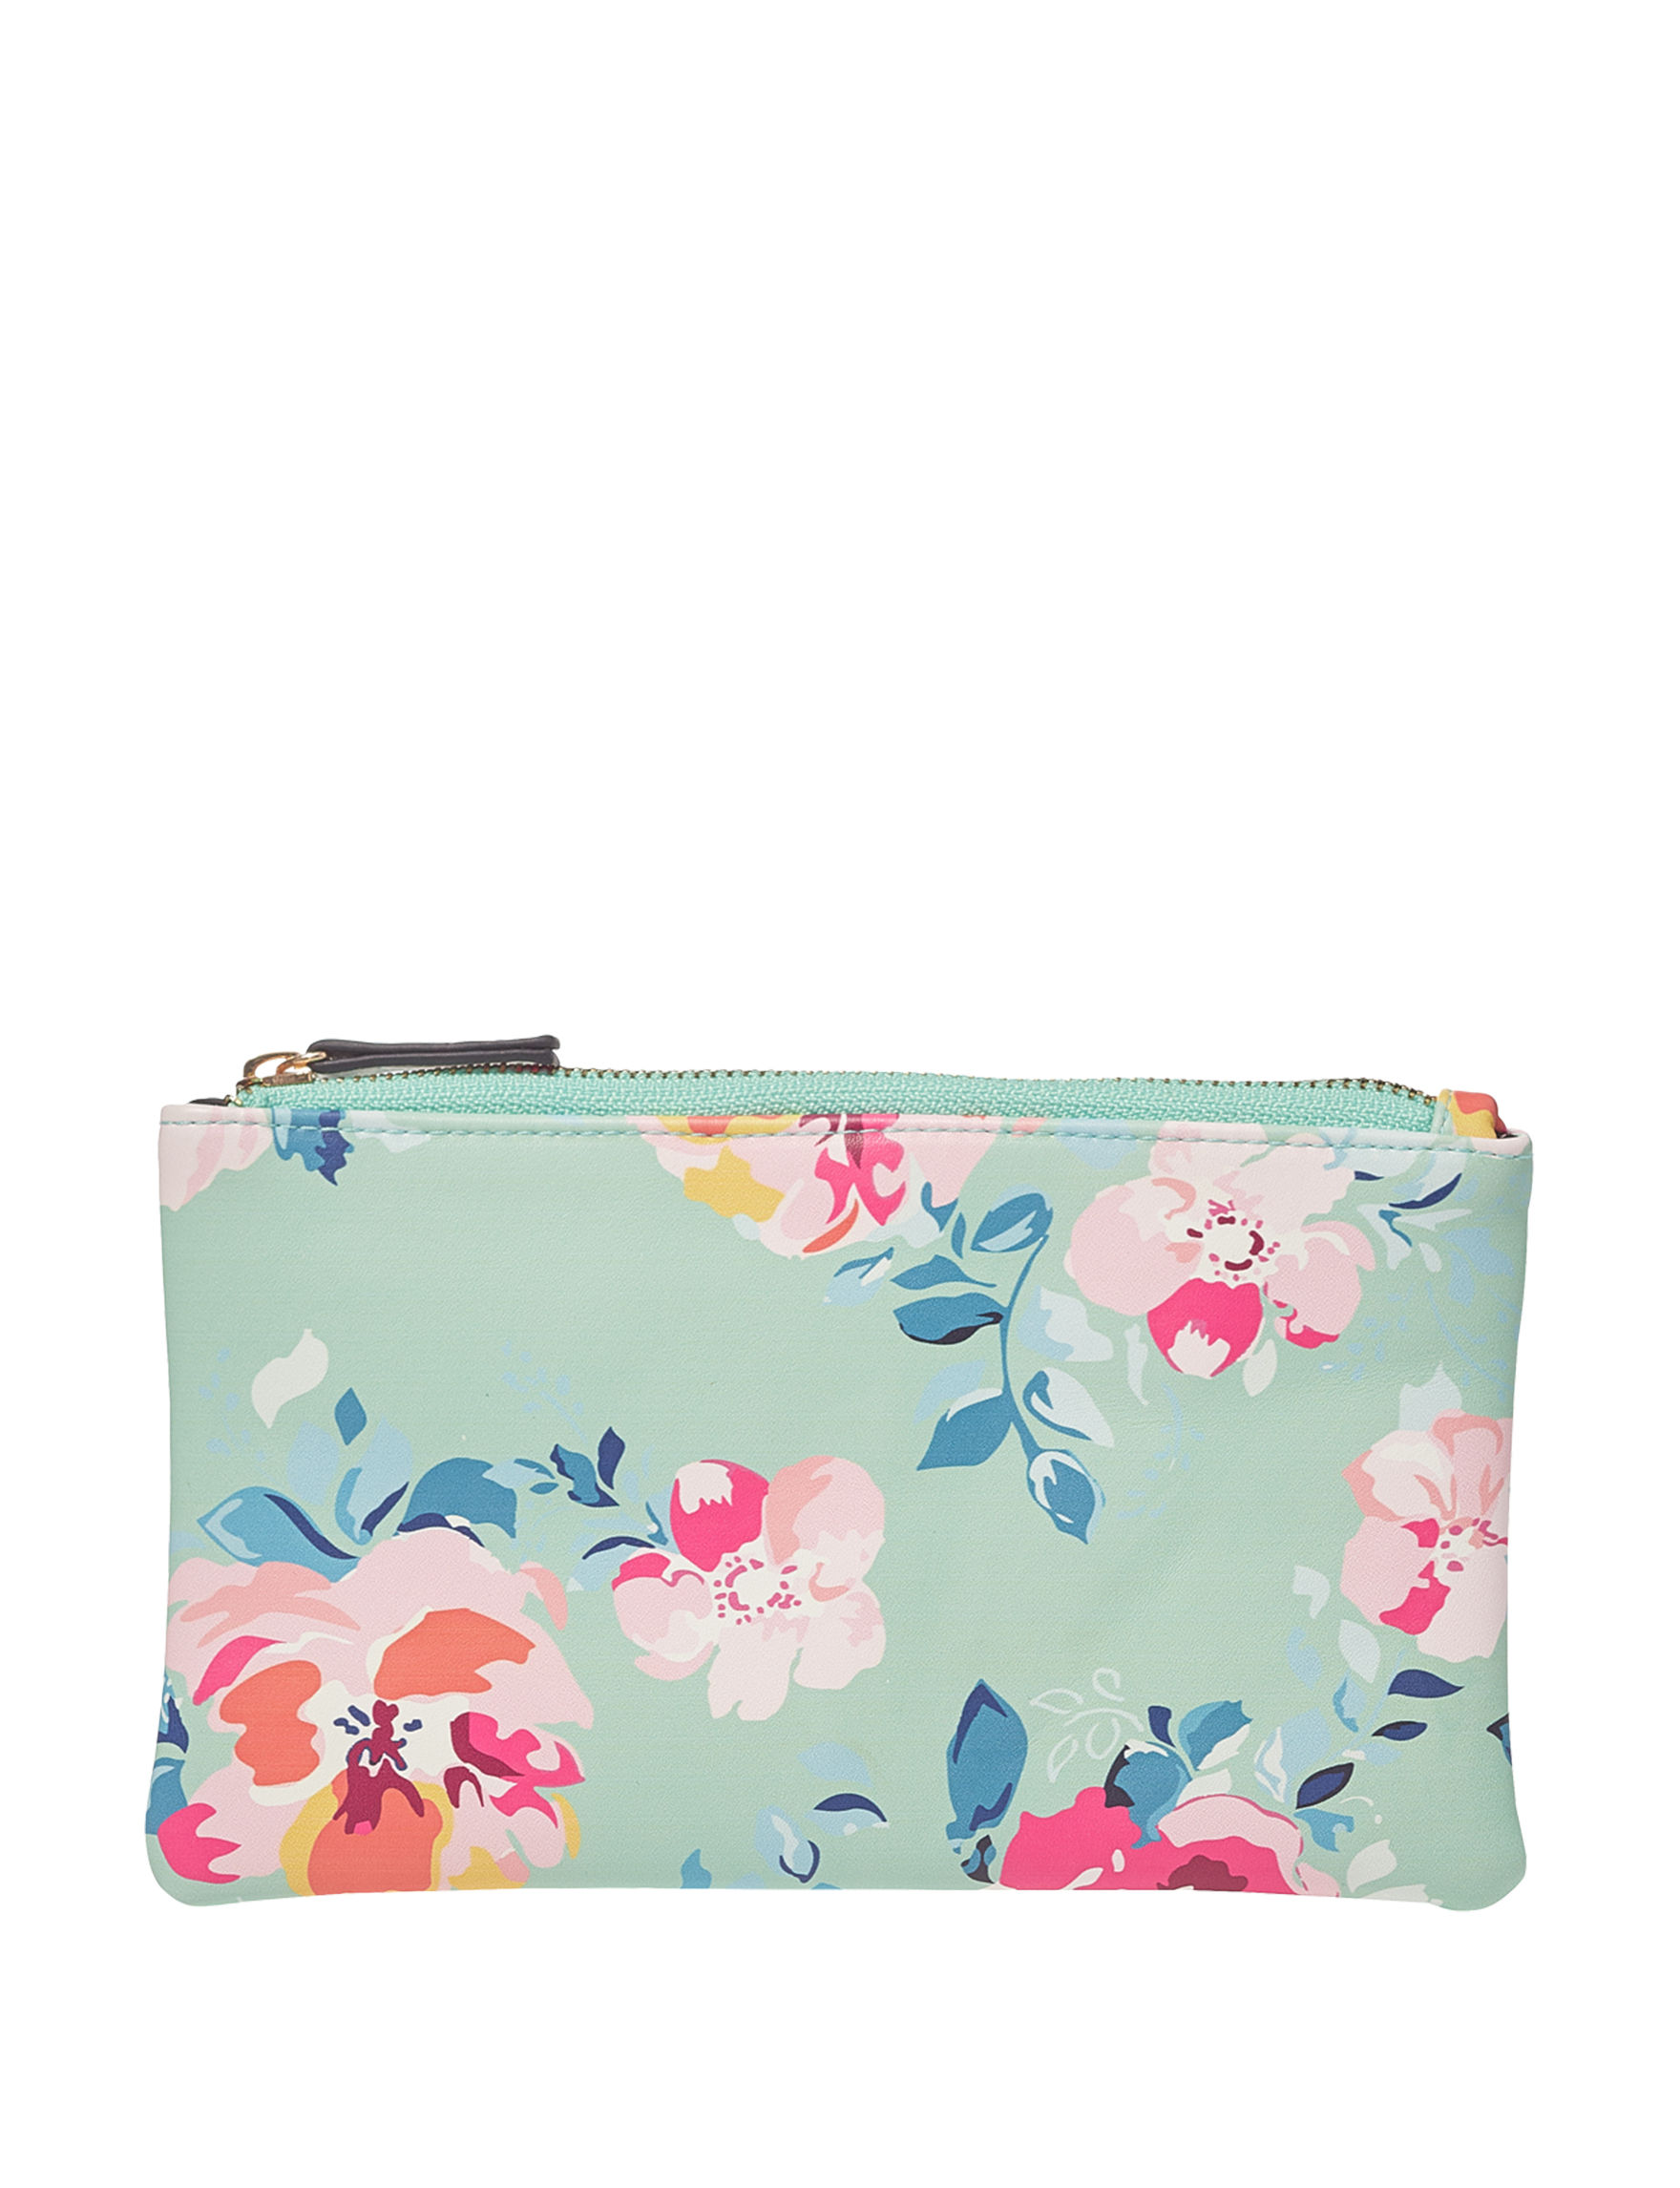 AHQ Green Floral Pouch